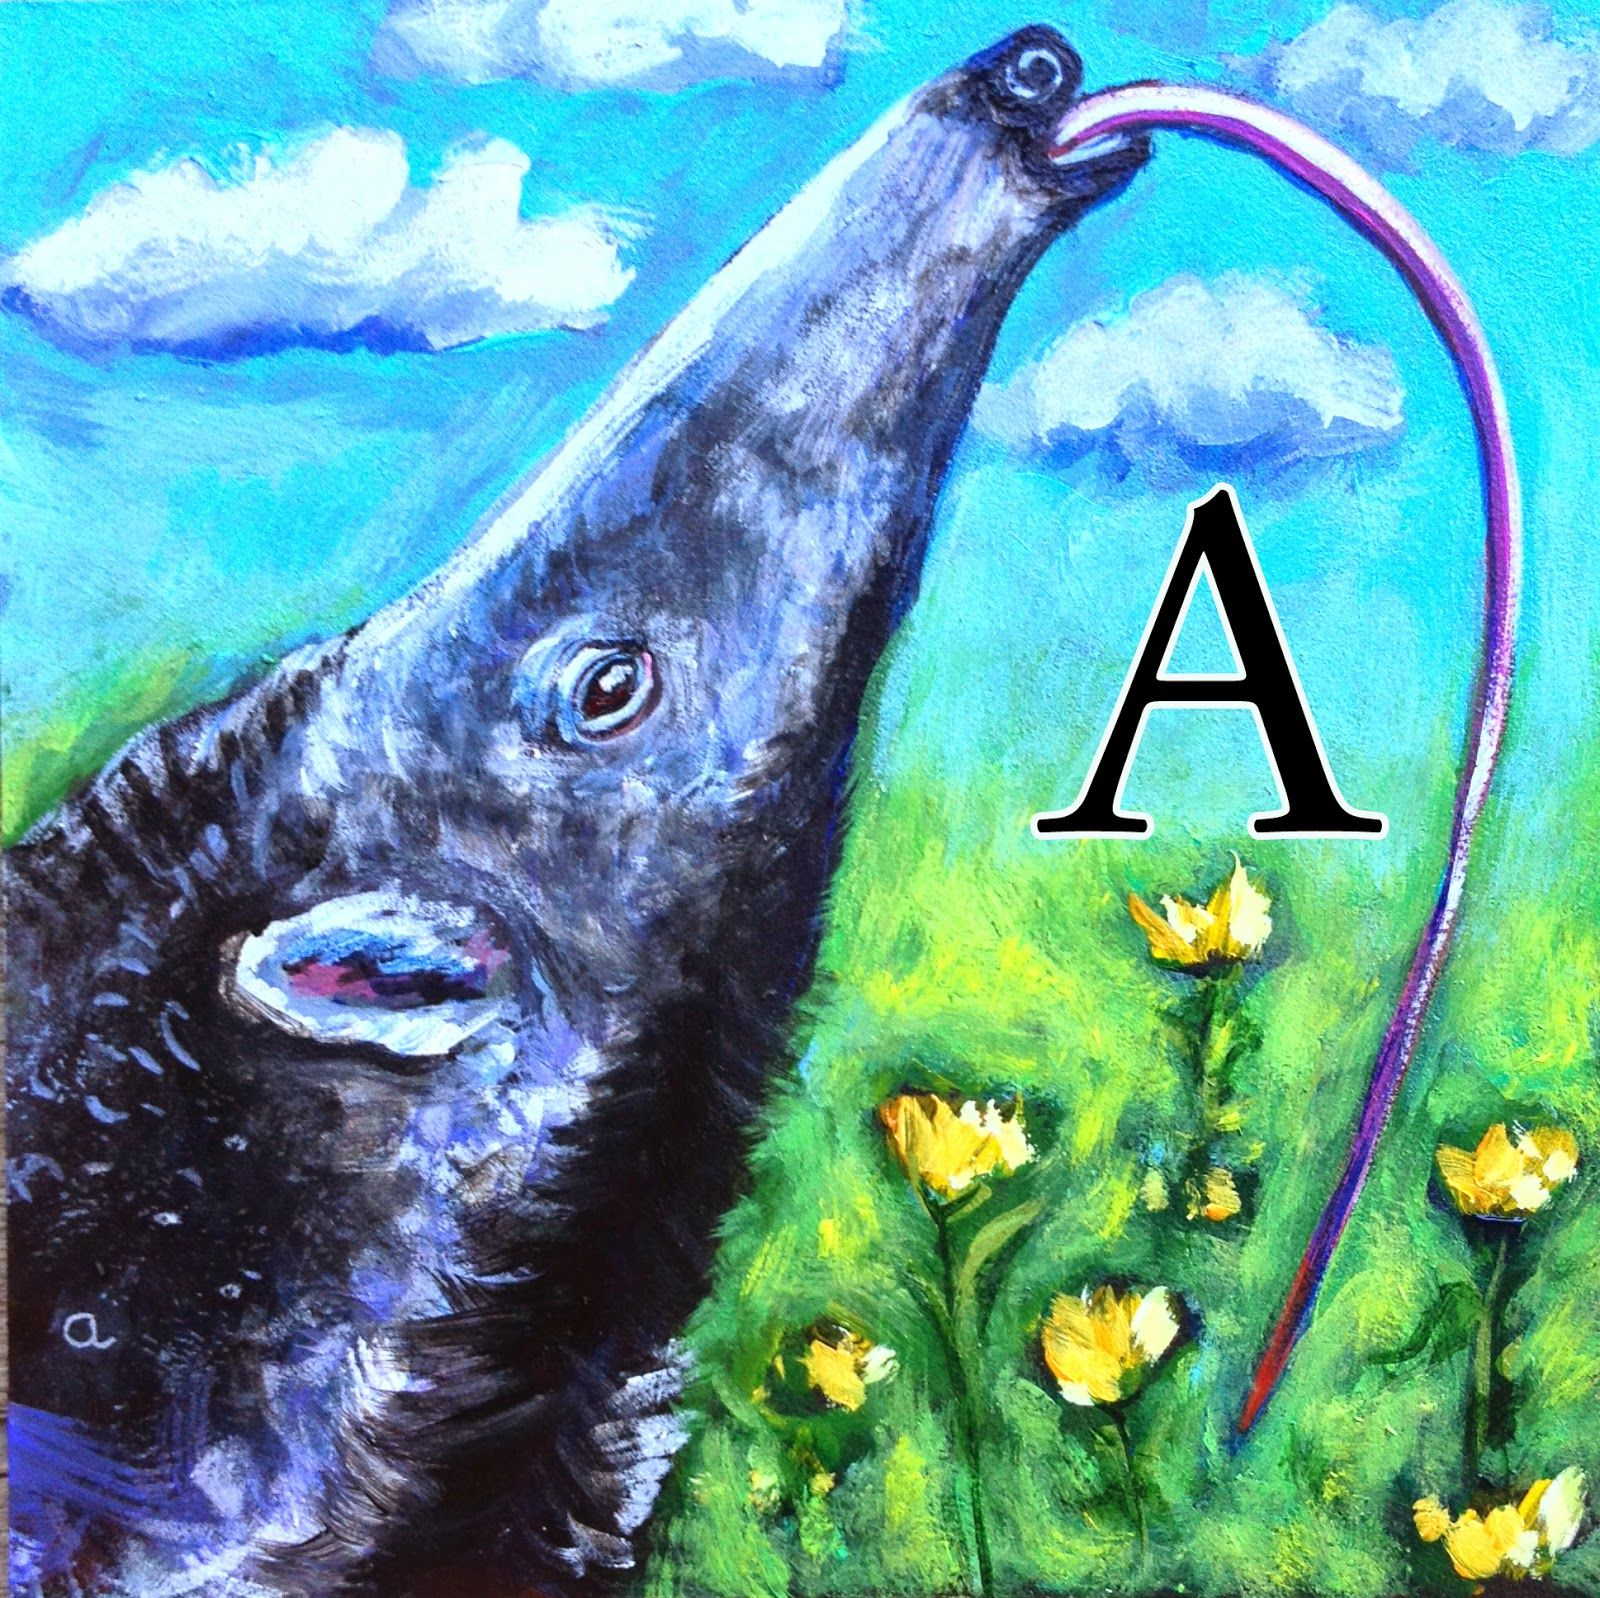 Re-do... A is for Anteater